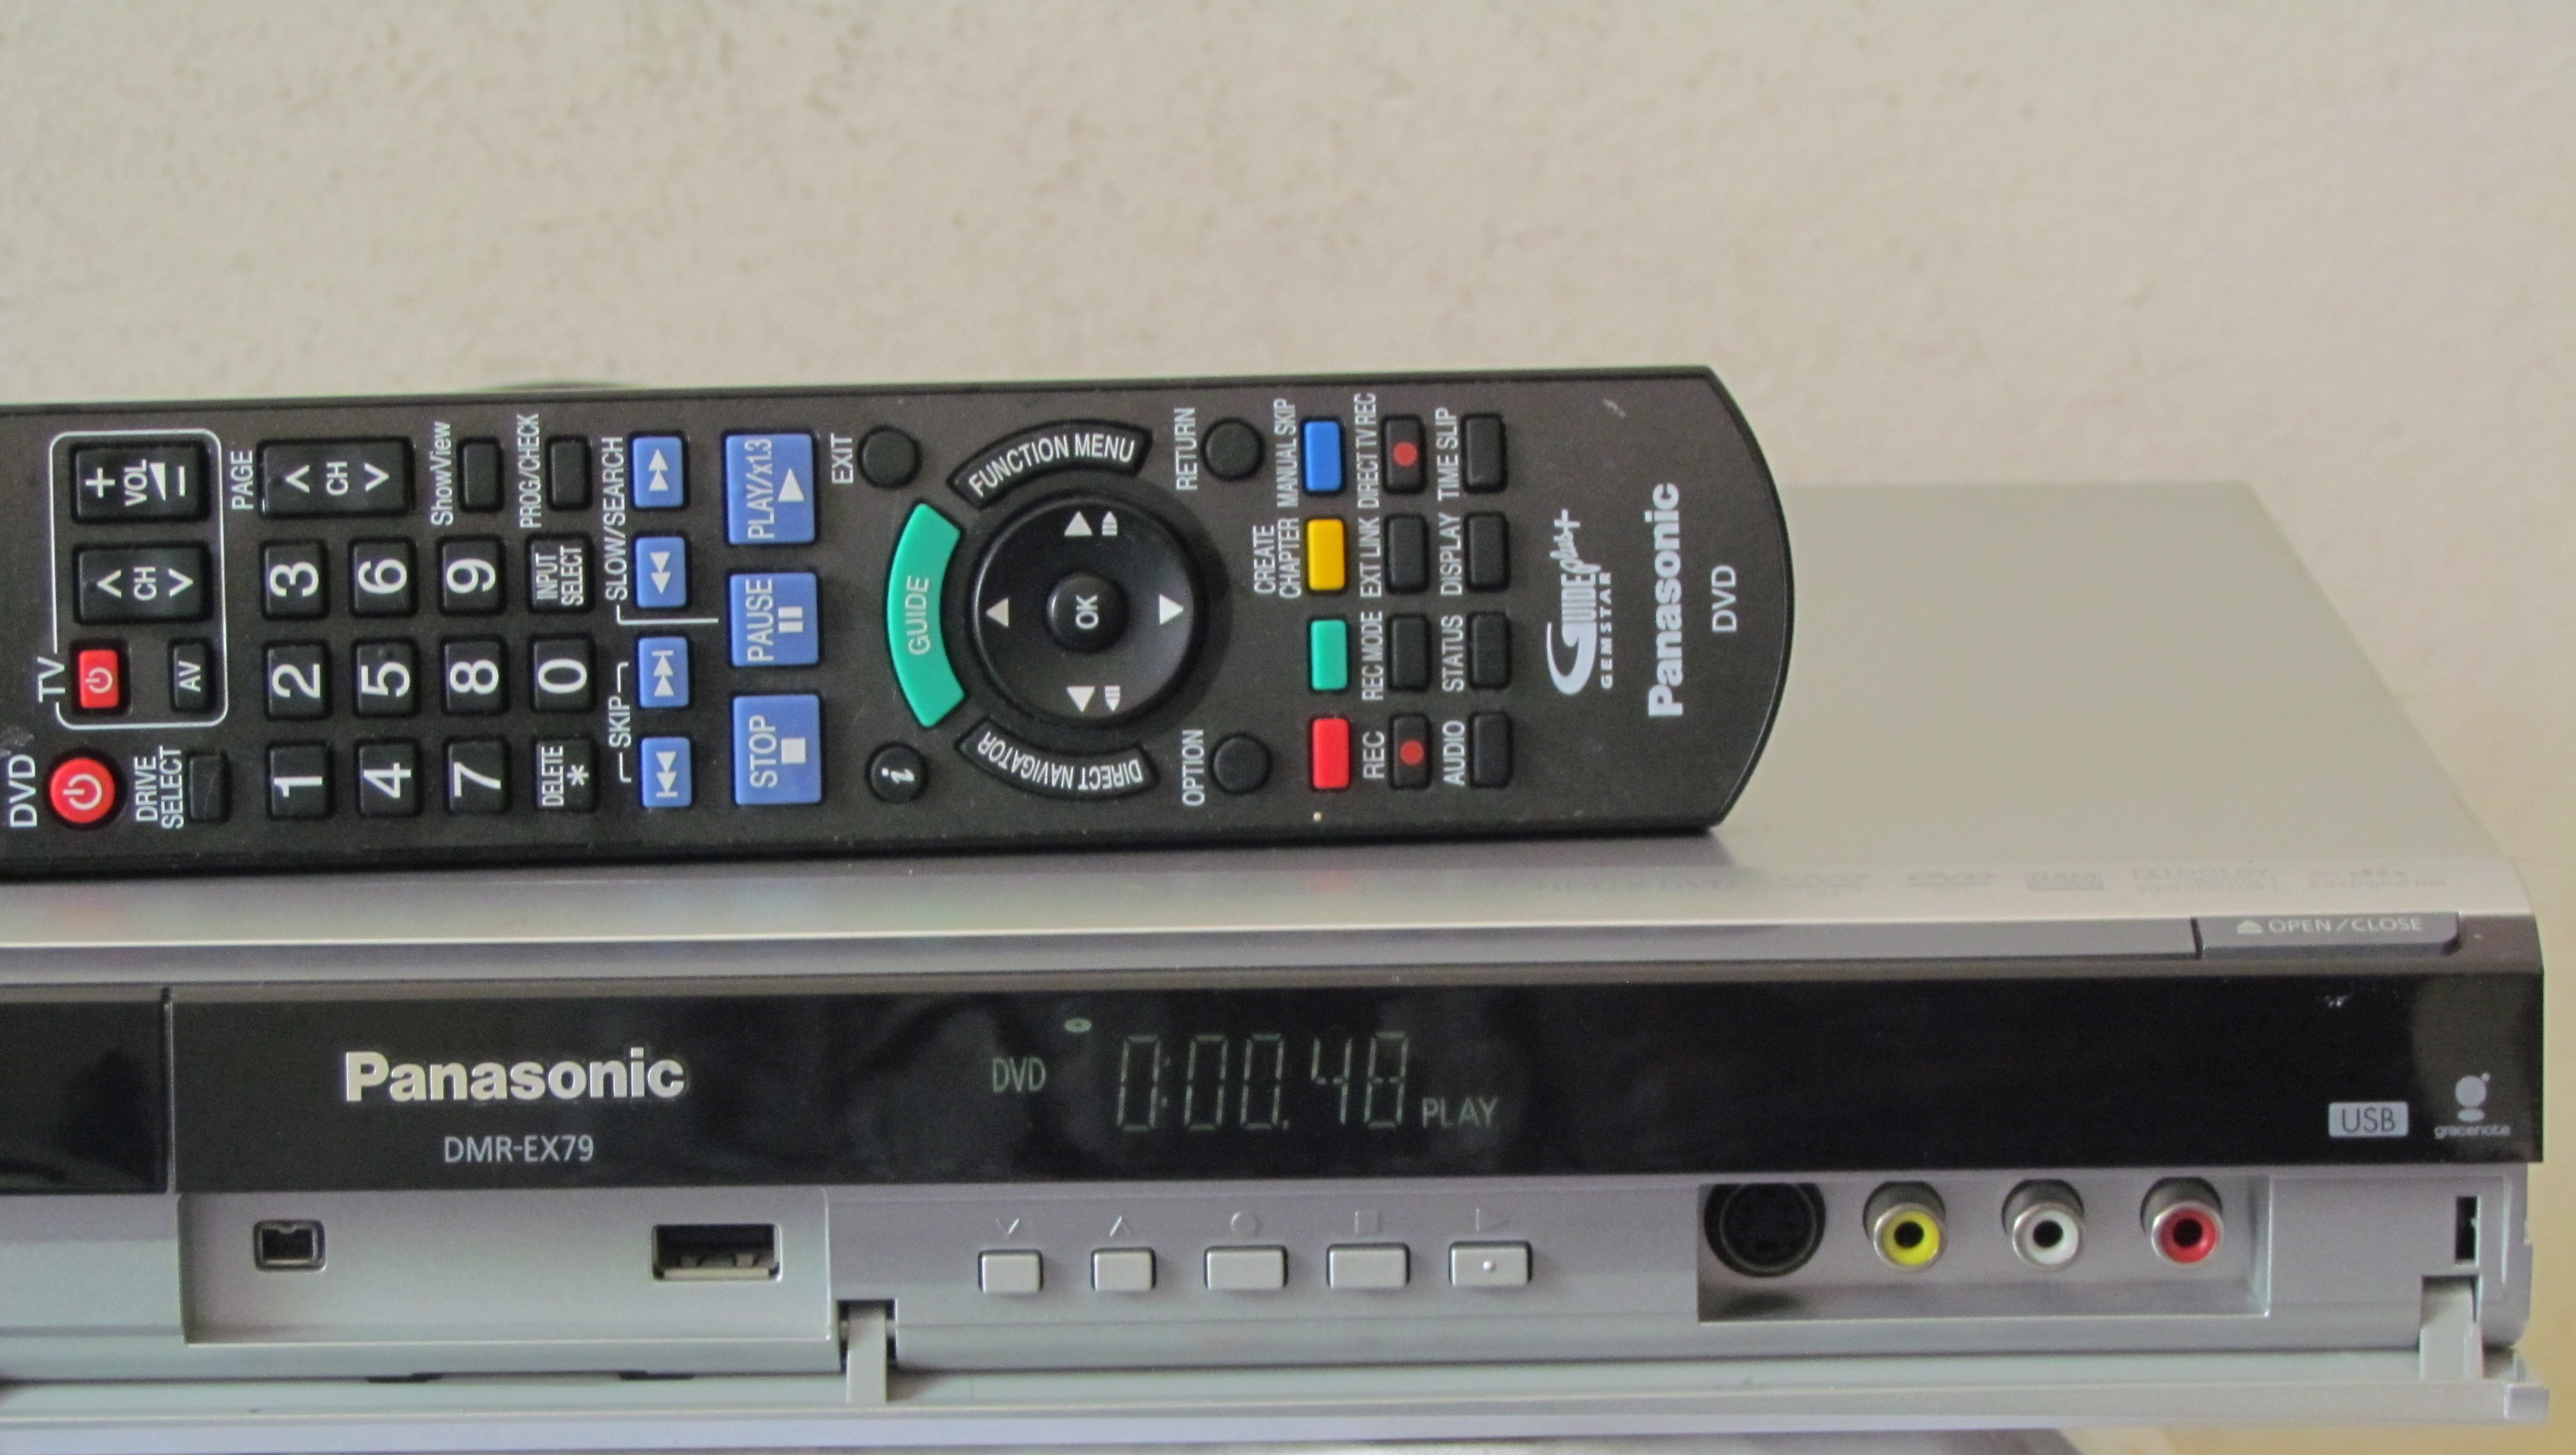 dvd festplattenrecorder panasonic dmr ex79 fernbed. Black Bedroom Furniture Sets. Home Design Ideas